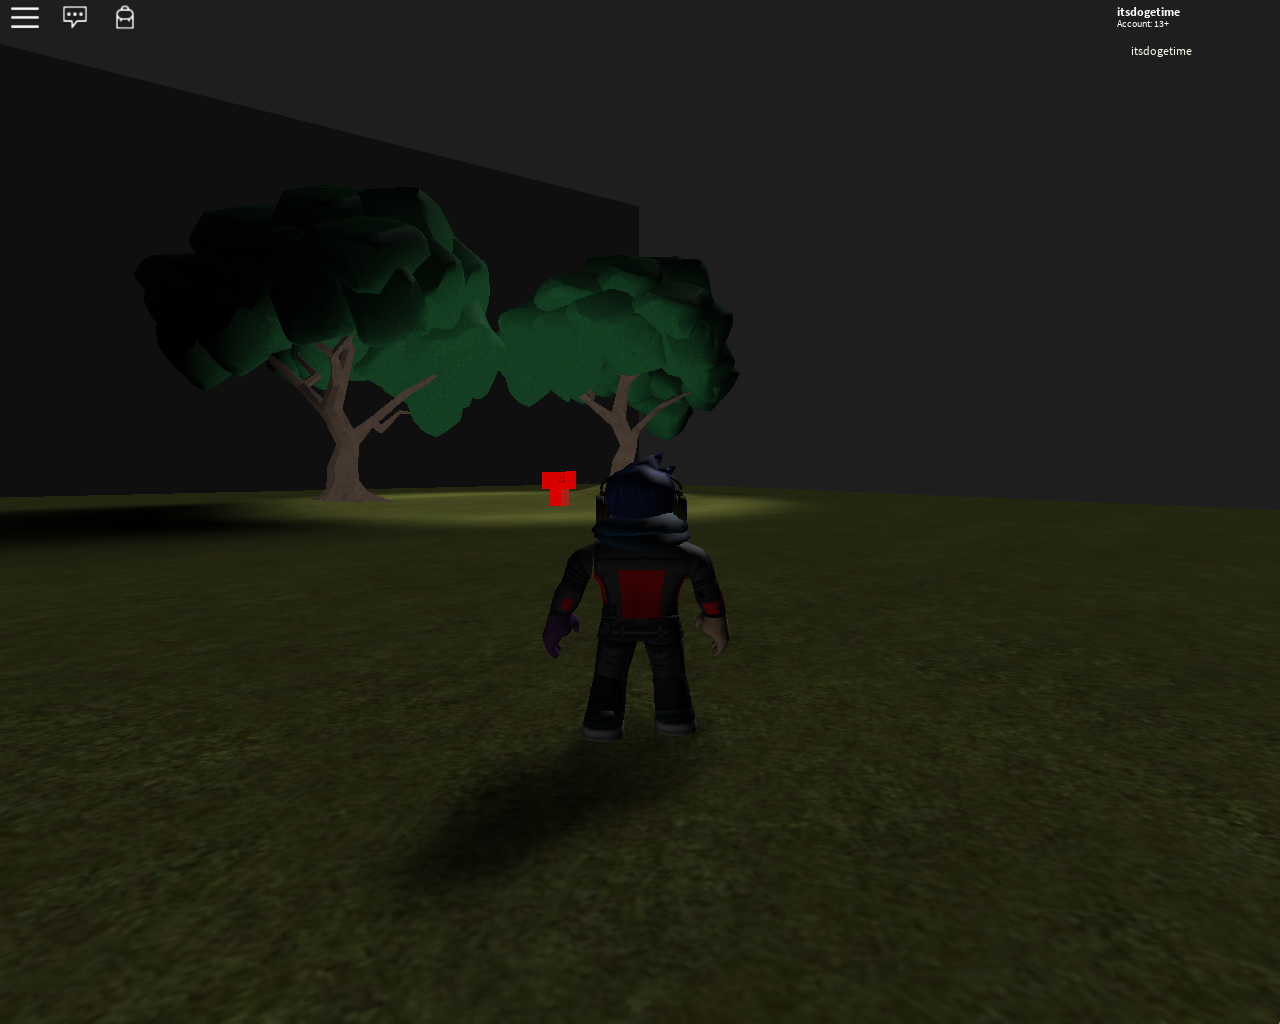 Two Trees Roblox Creepypasta Wiki Fandom - roblox creepypasta wiki youtube